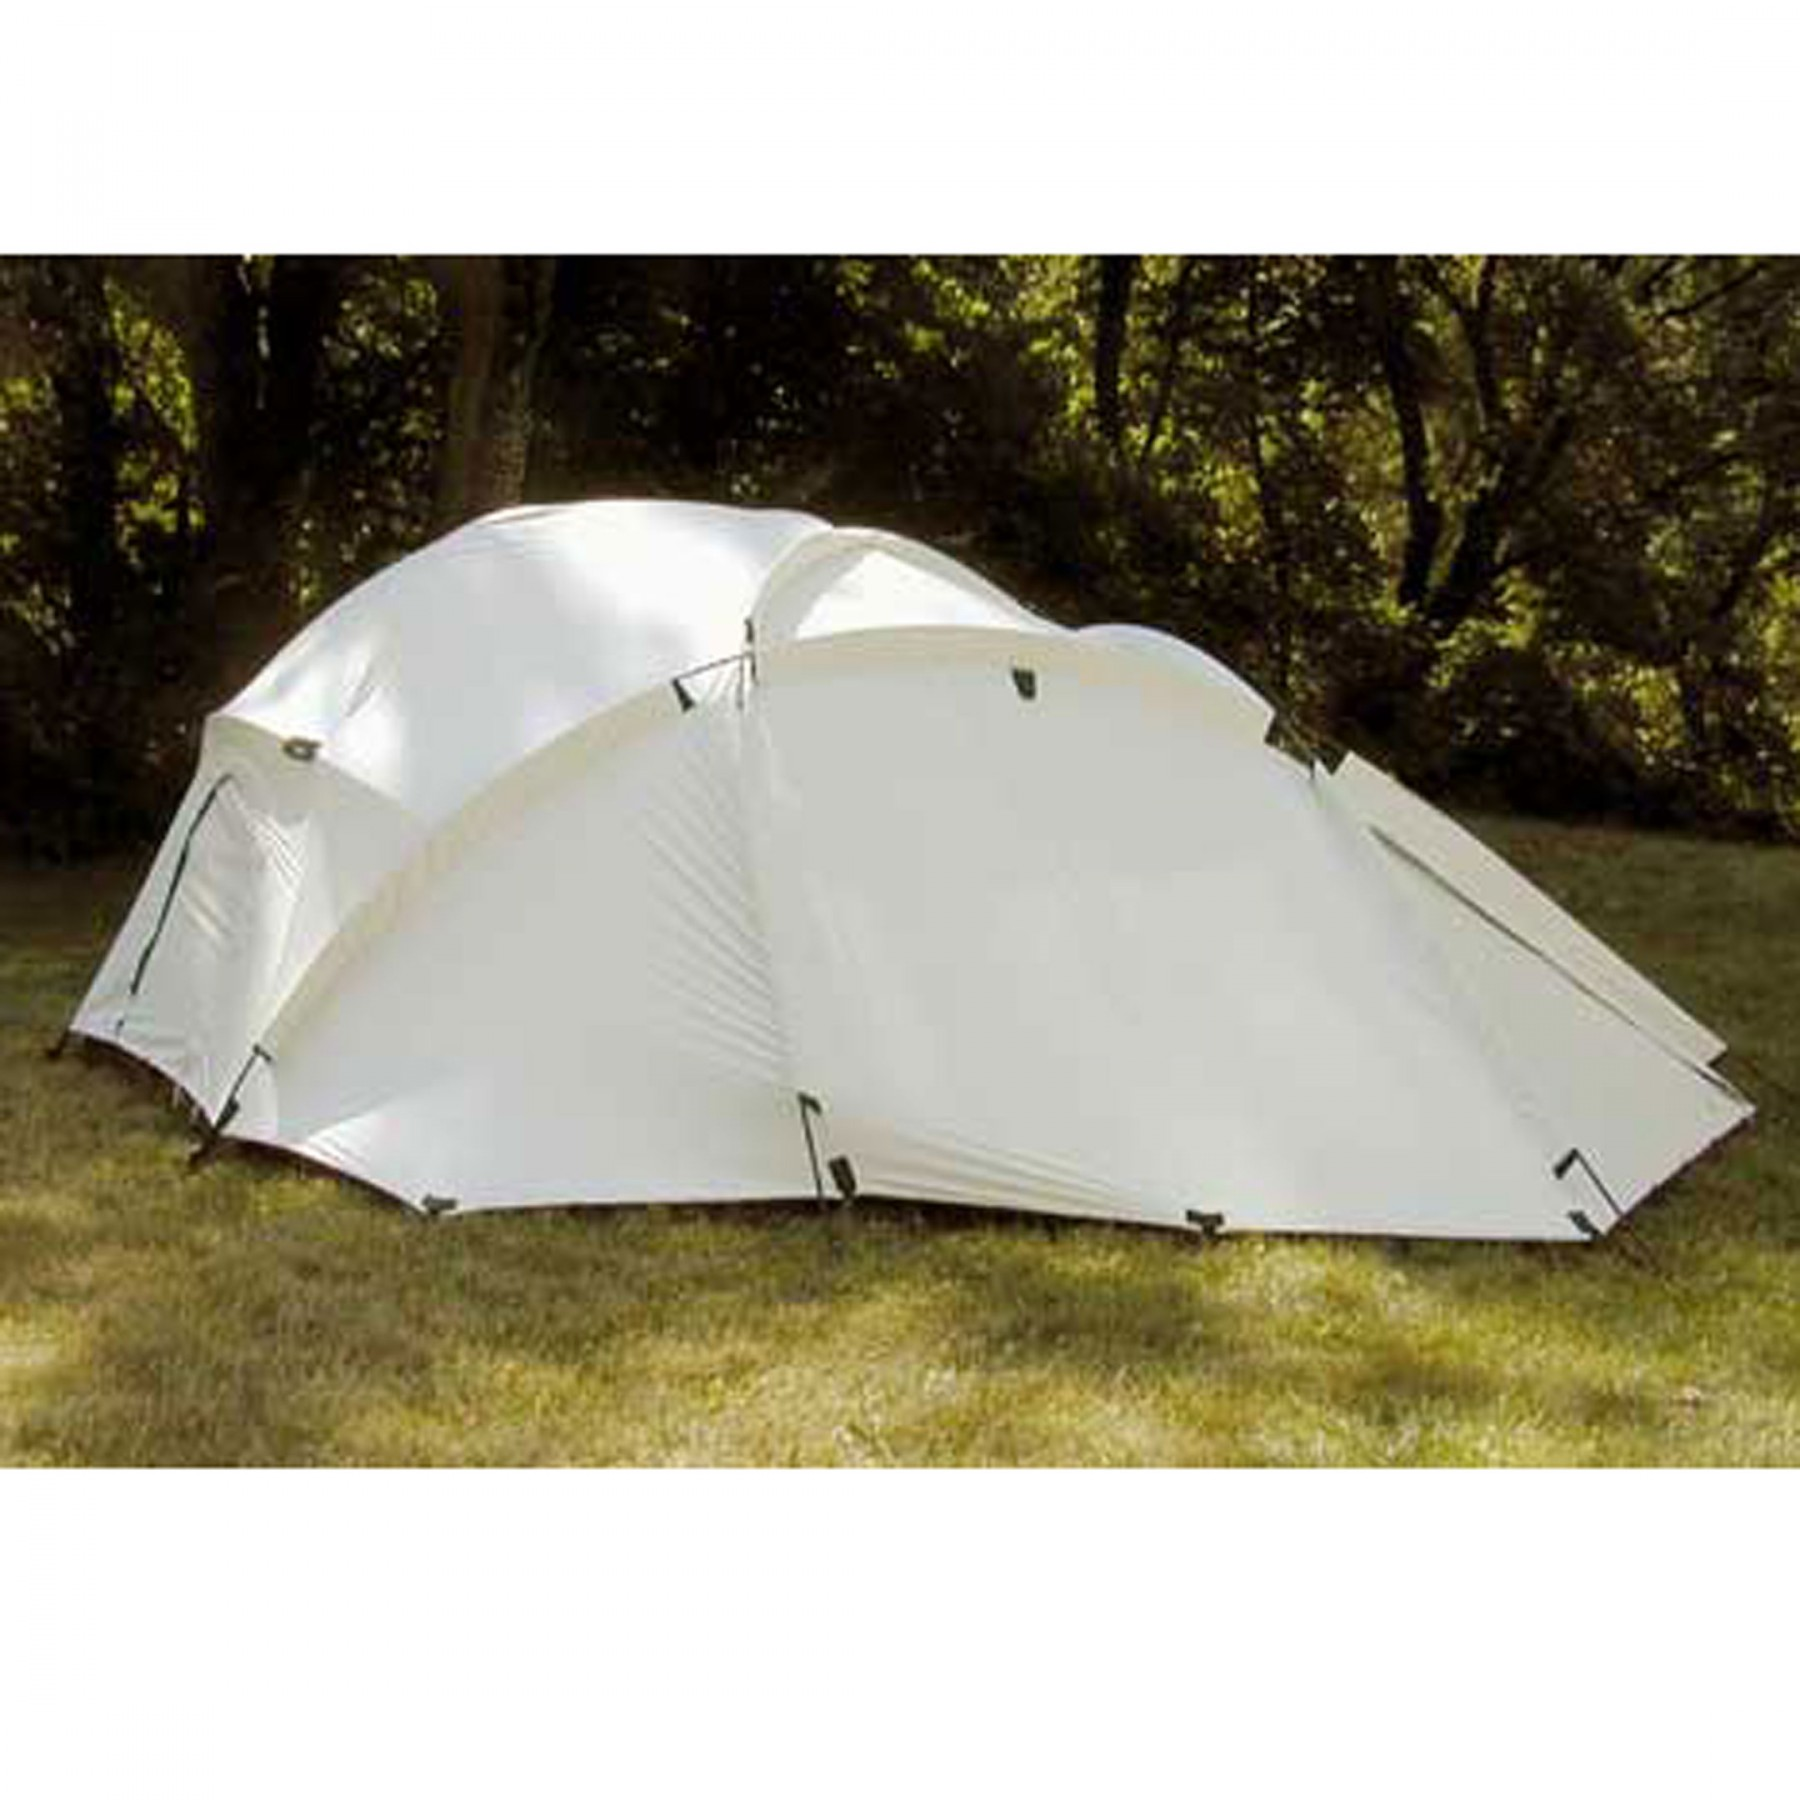 Cold Weather Tents : Eureka military extreme cold weather tent man ecwt